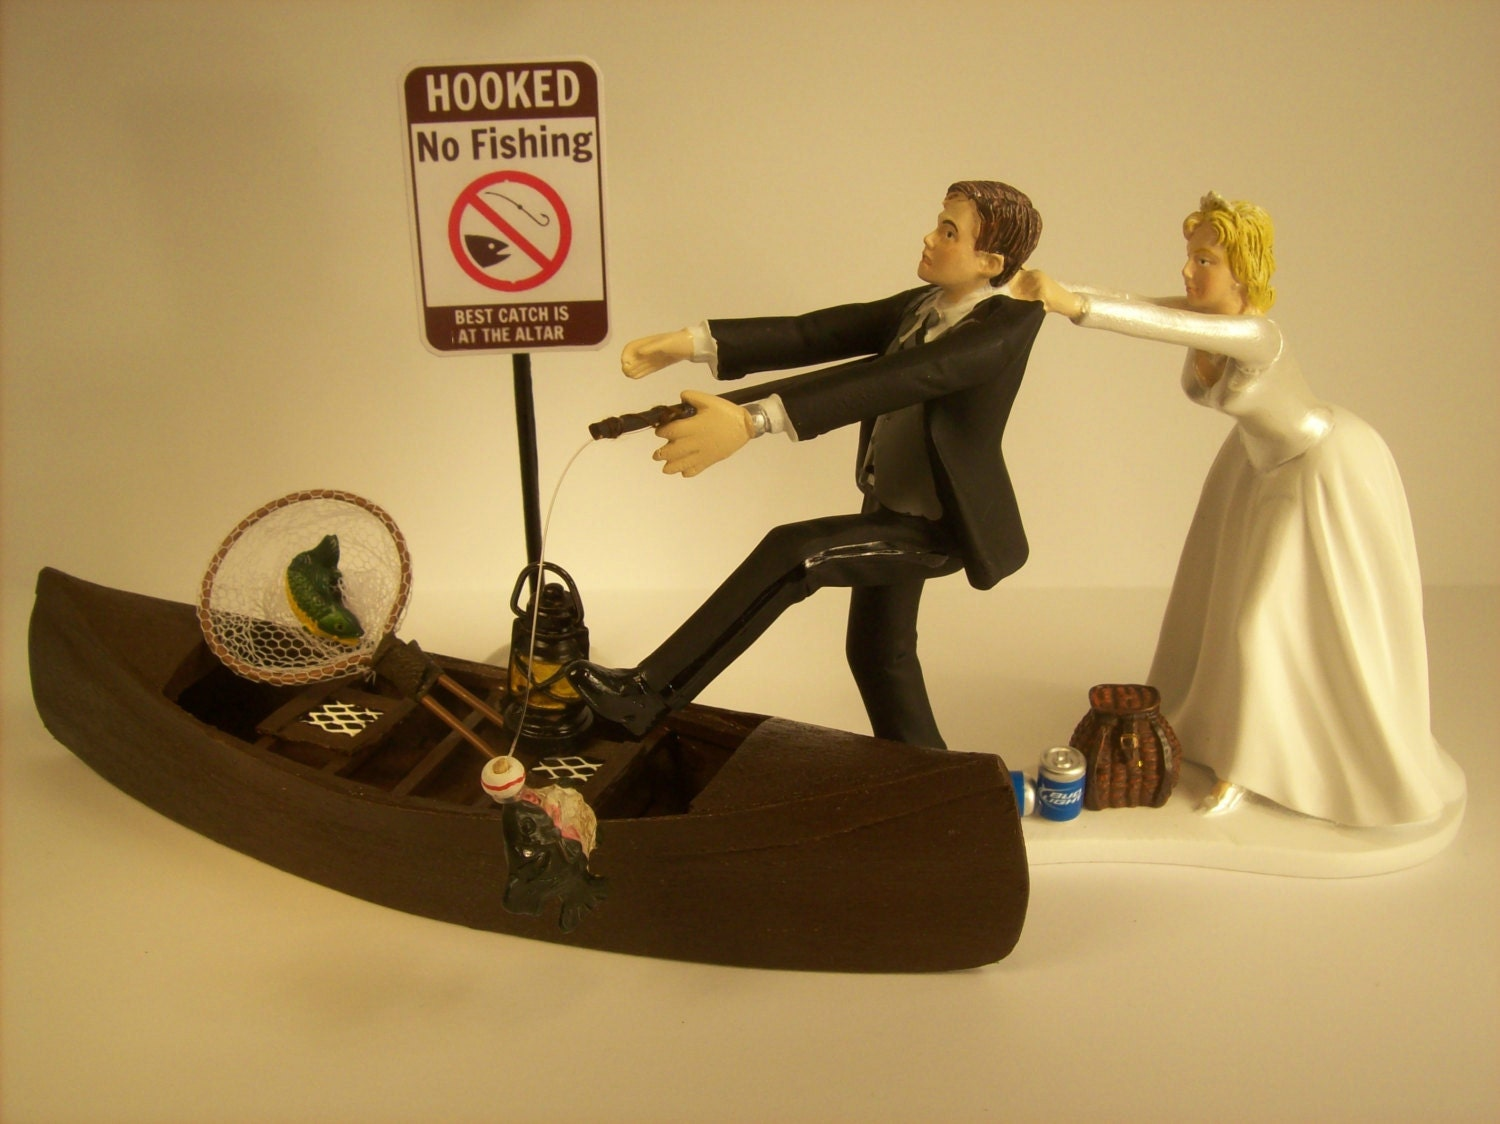 boat wedding cake topper no fishing come back wedding cake topper w boat 1991